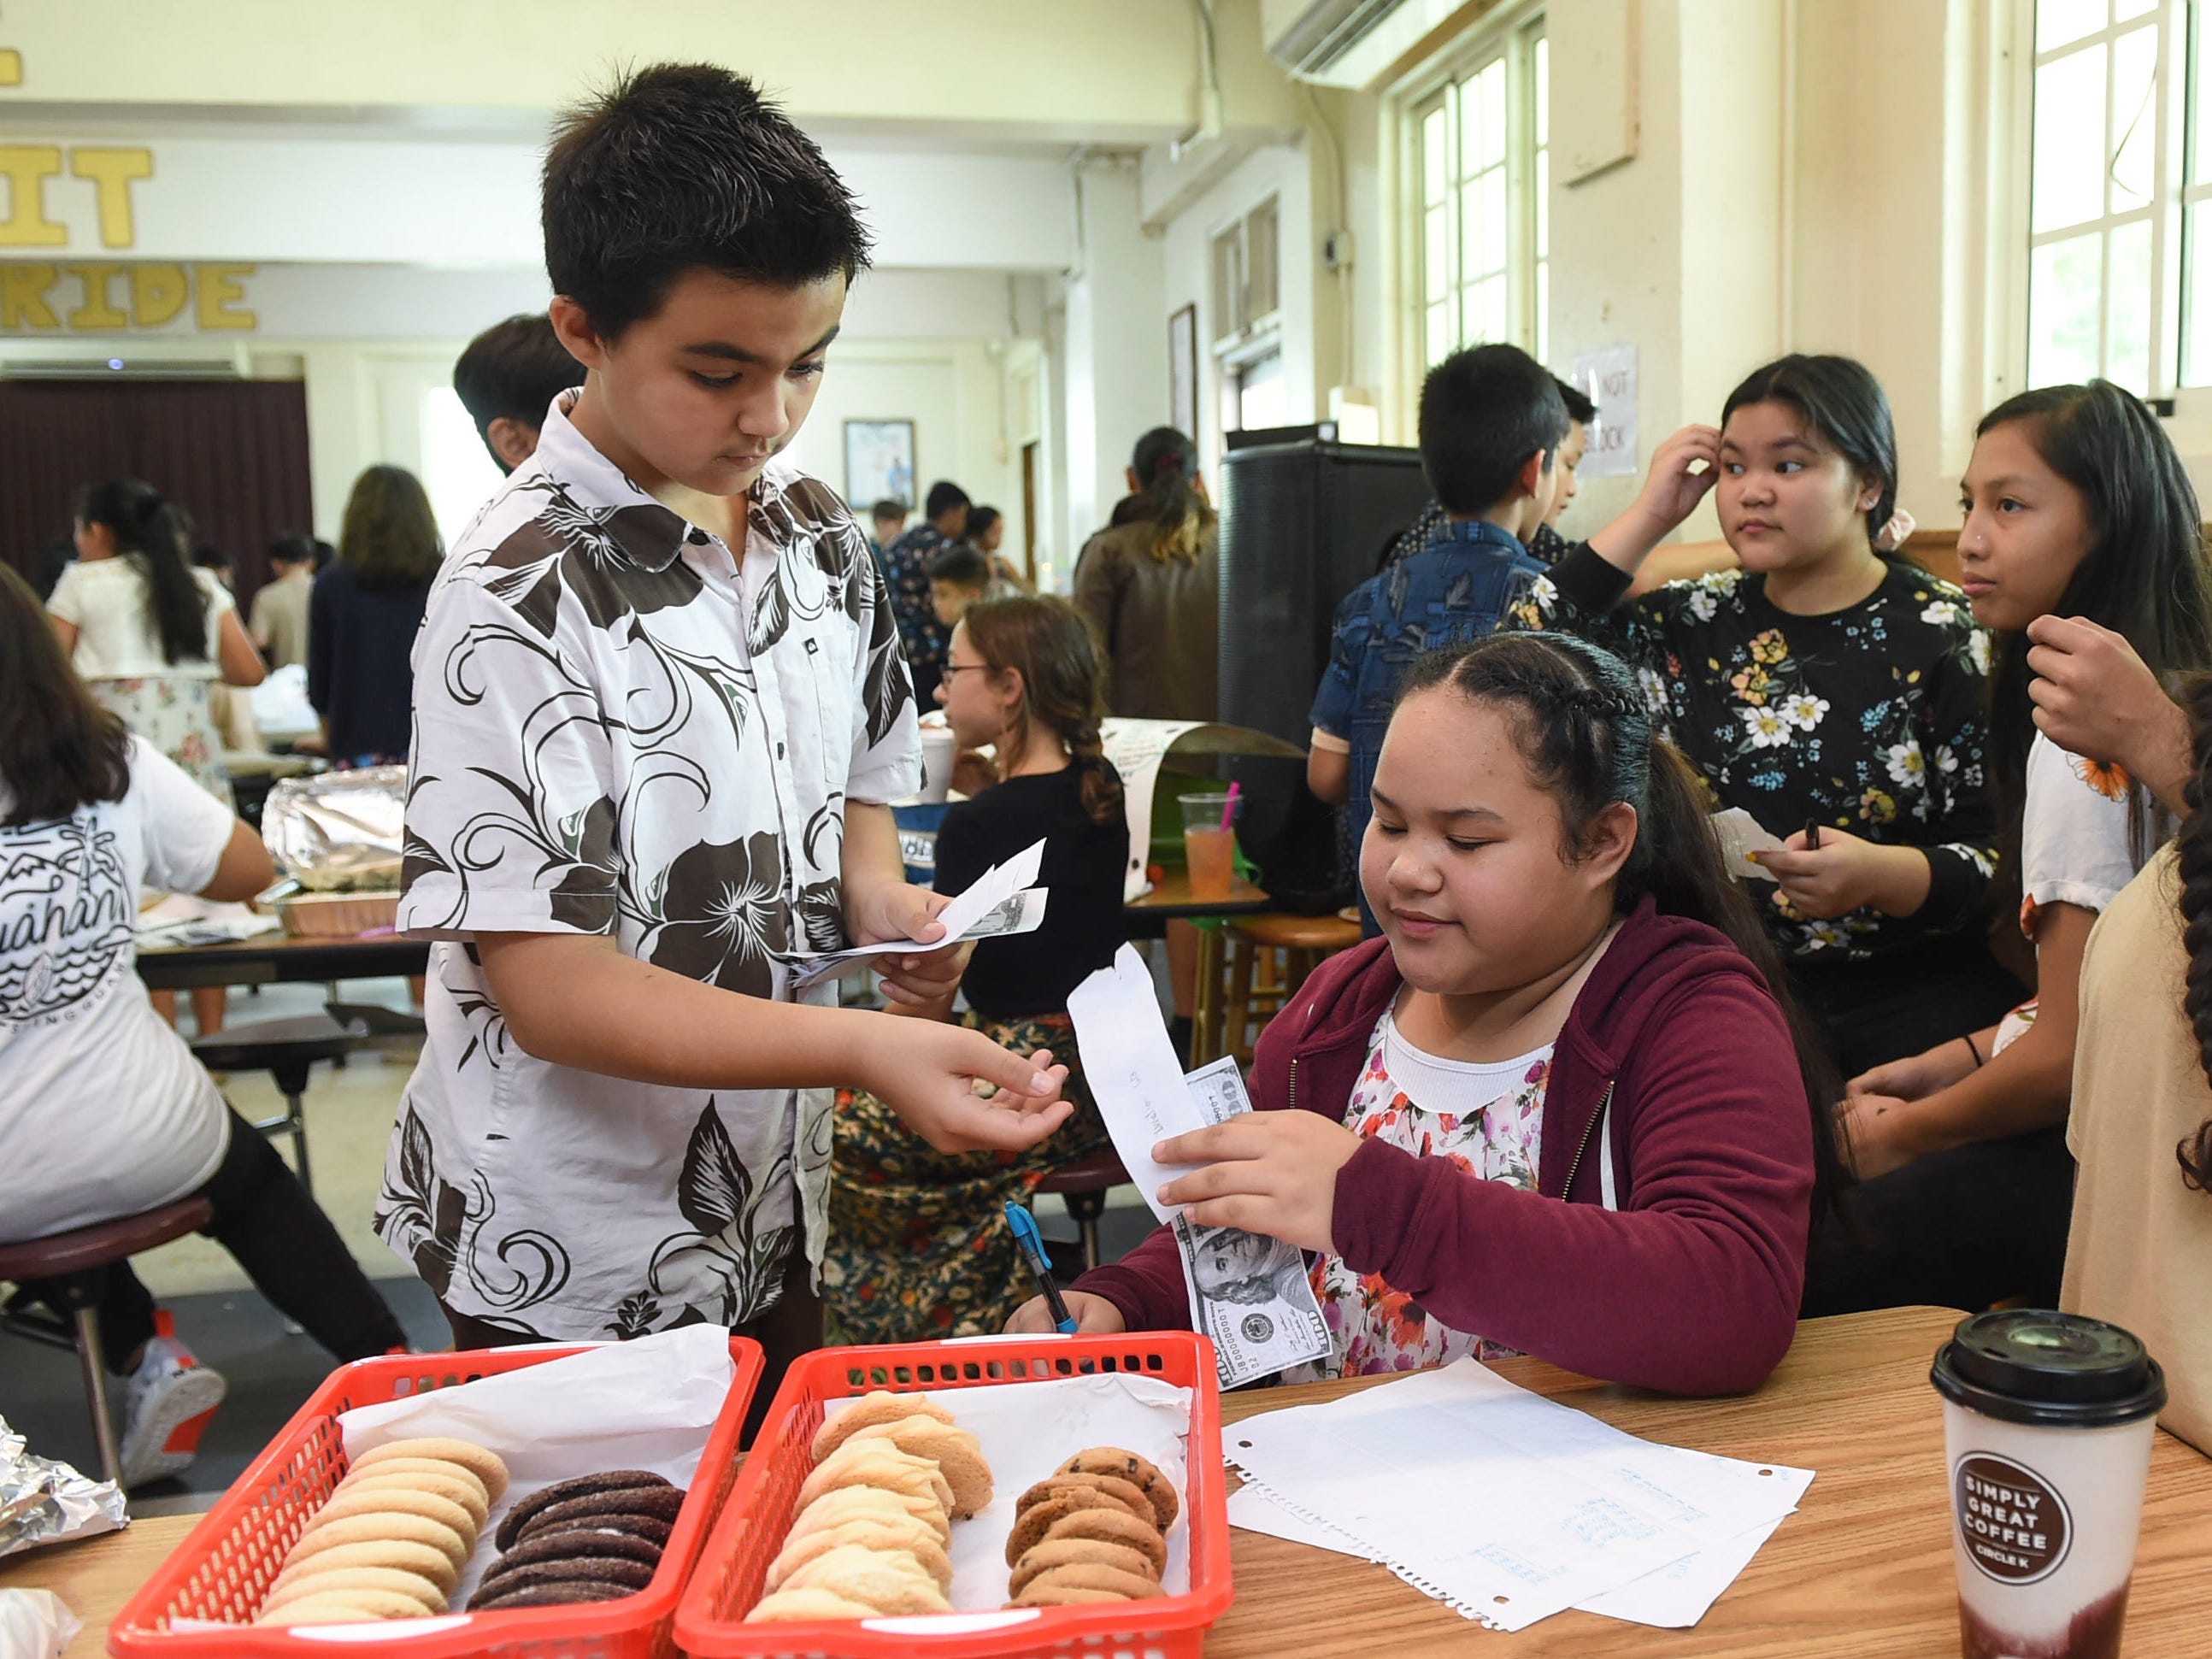 Sixth-grader Alaynan Atalig, 11, collects a payment at her cookie stand during the 5th Annual Ysrael School of Business Retail Bazaar and Entrepreneur Fair at Our Lady of Mount Carmel Catholic School in Agat, Jan. 18, 2019.